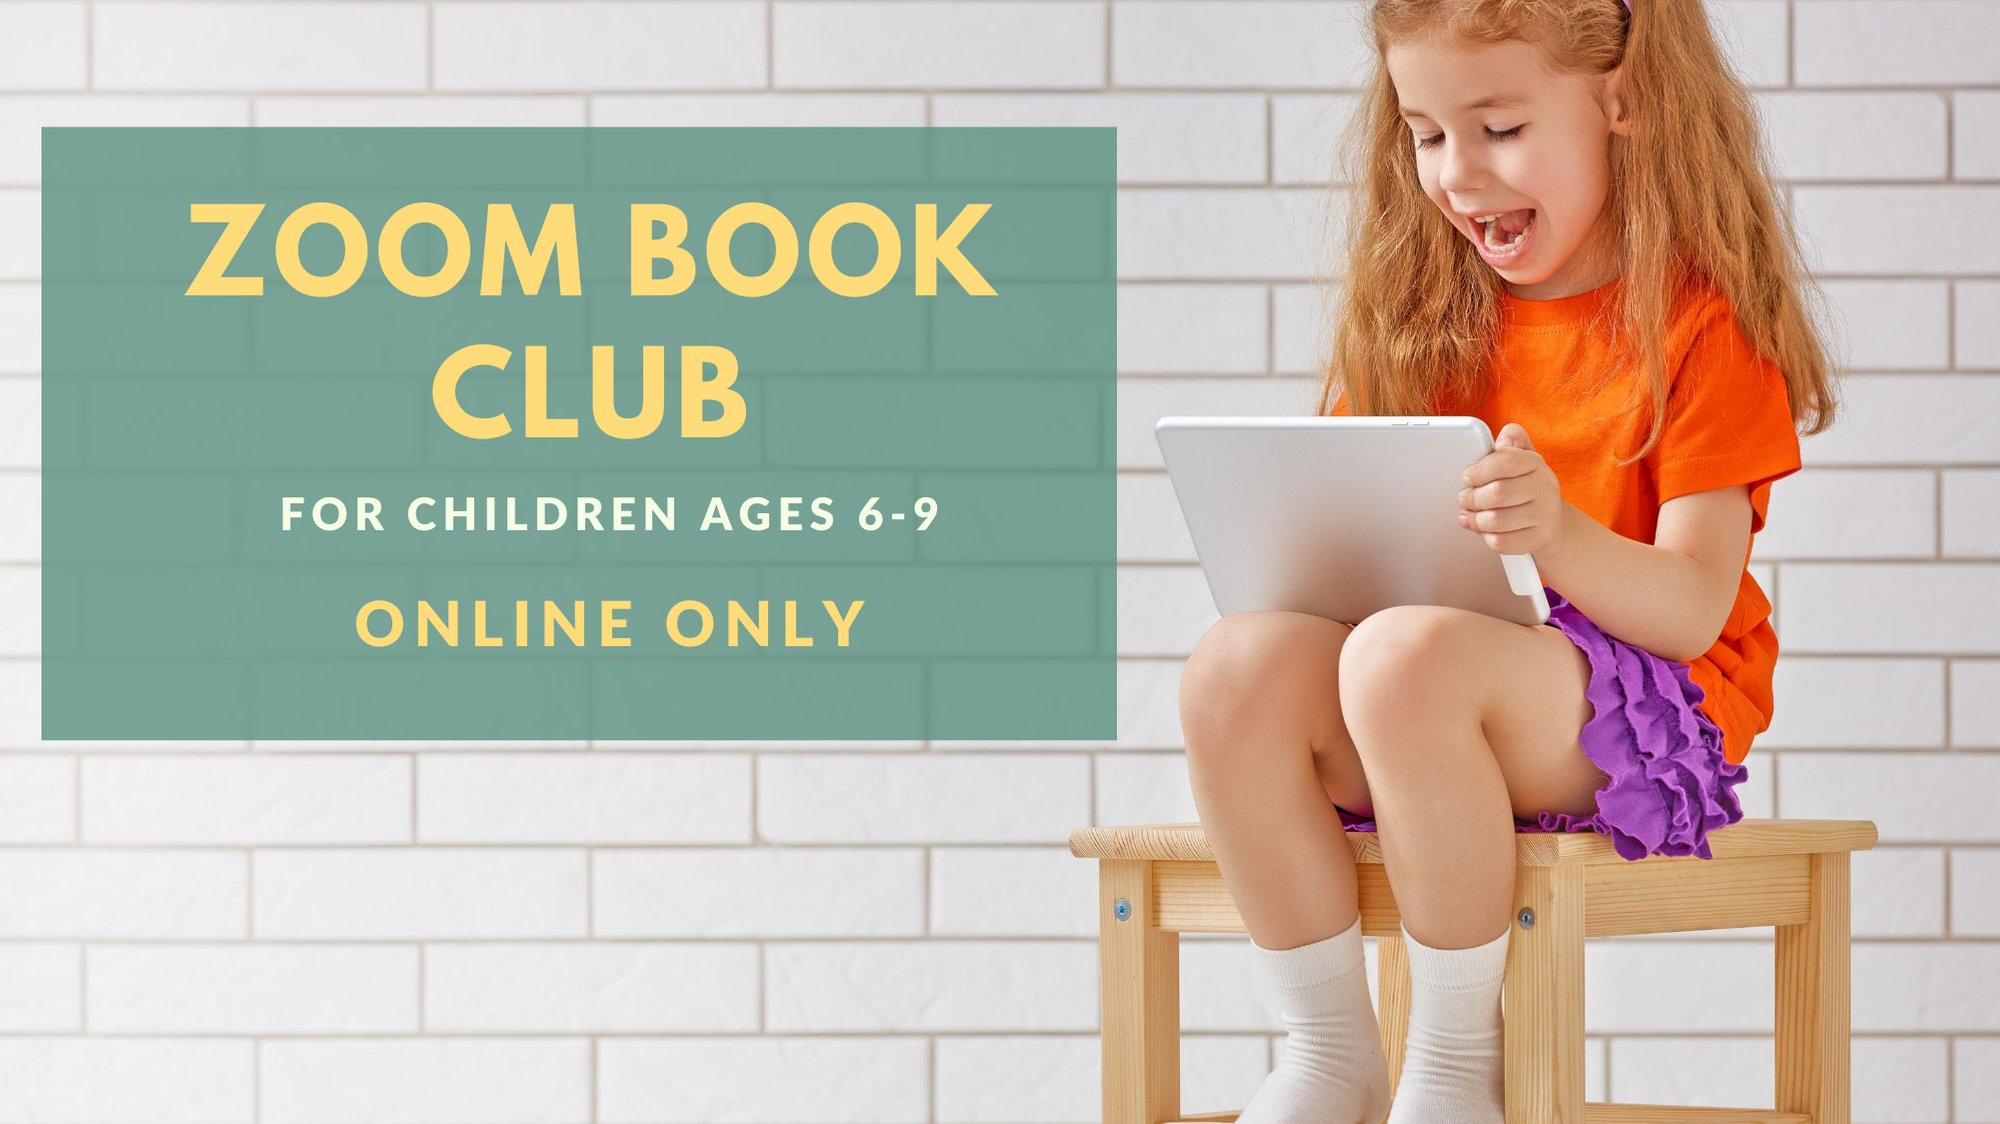 Zoom Book Club - Online!